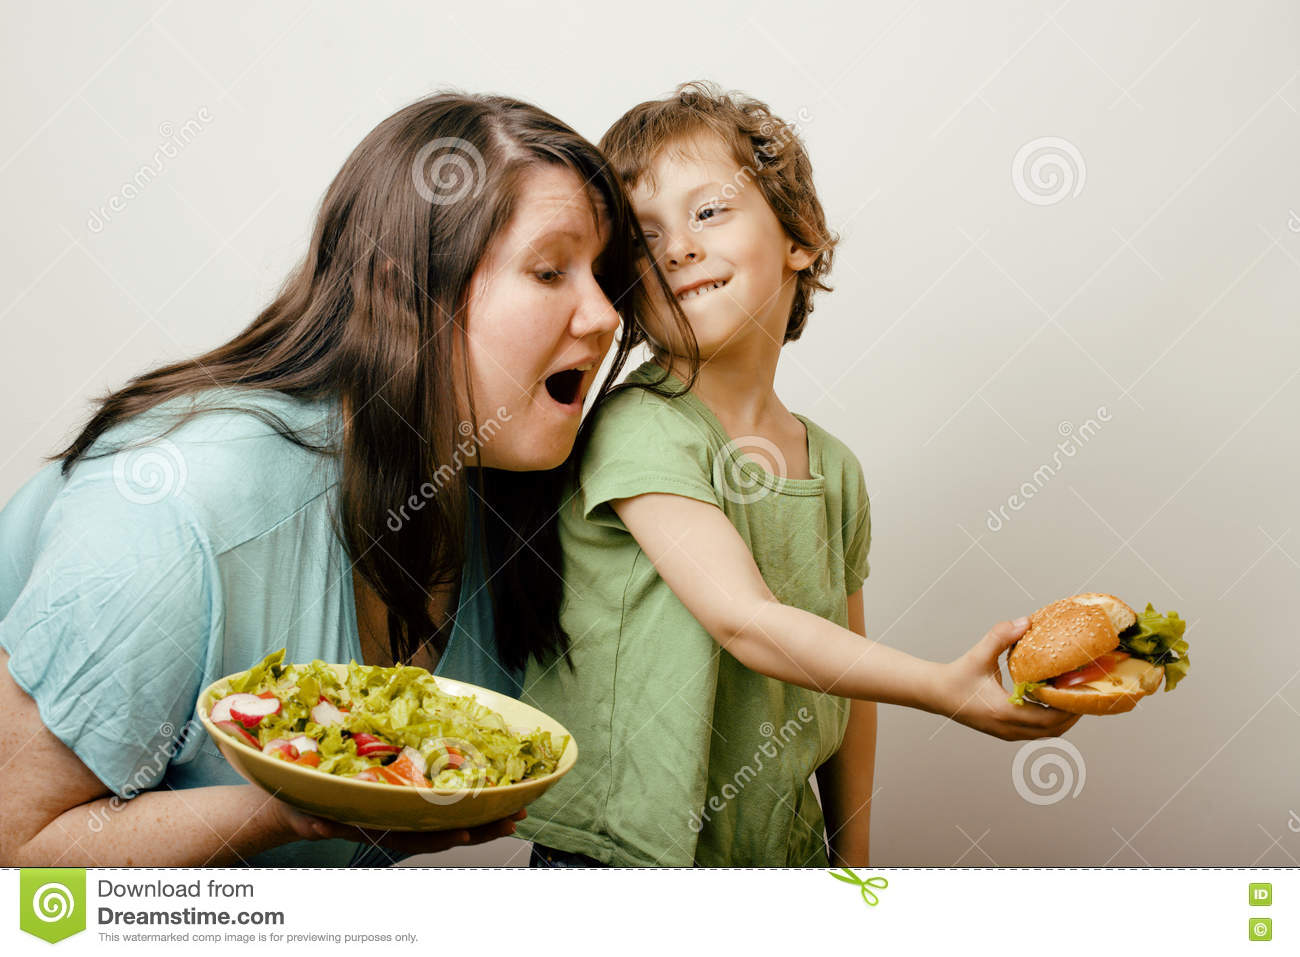 Well mature woman eats young woman pity, that